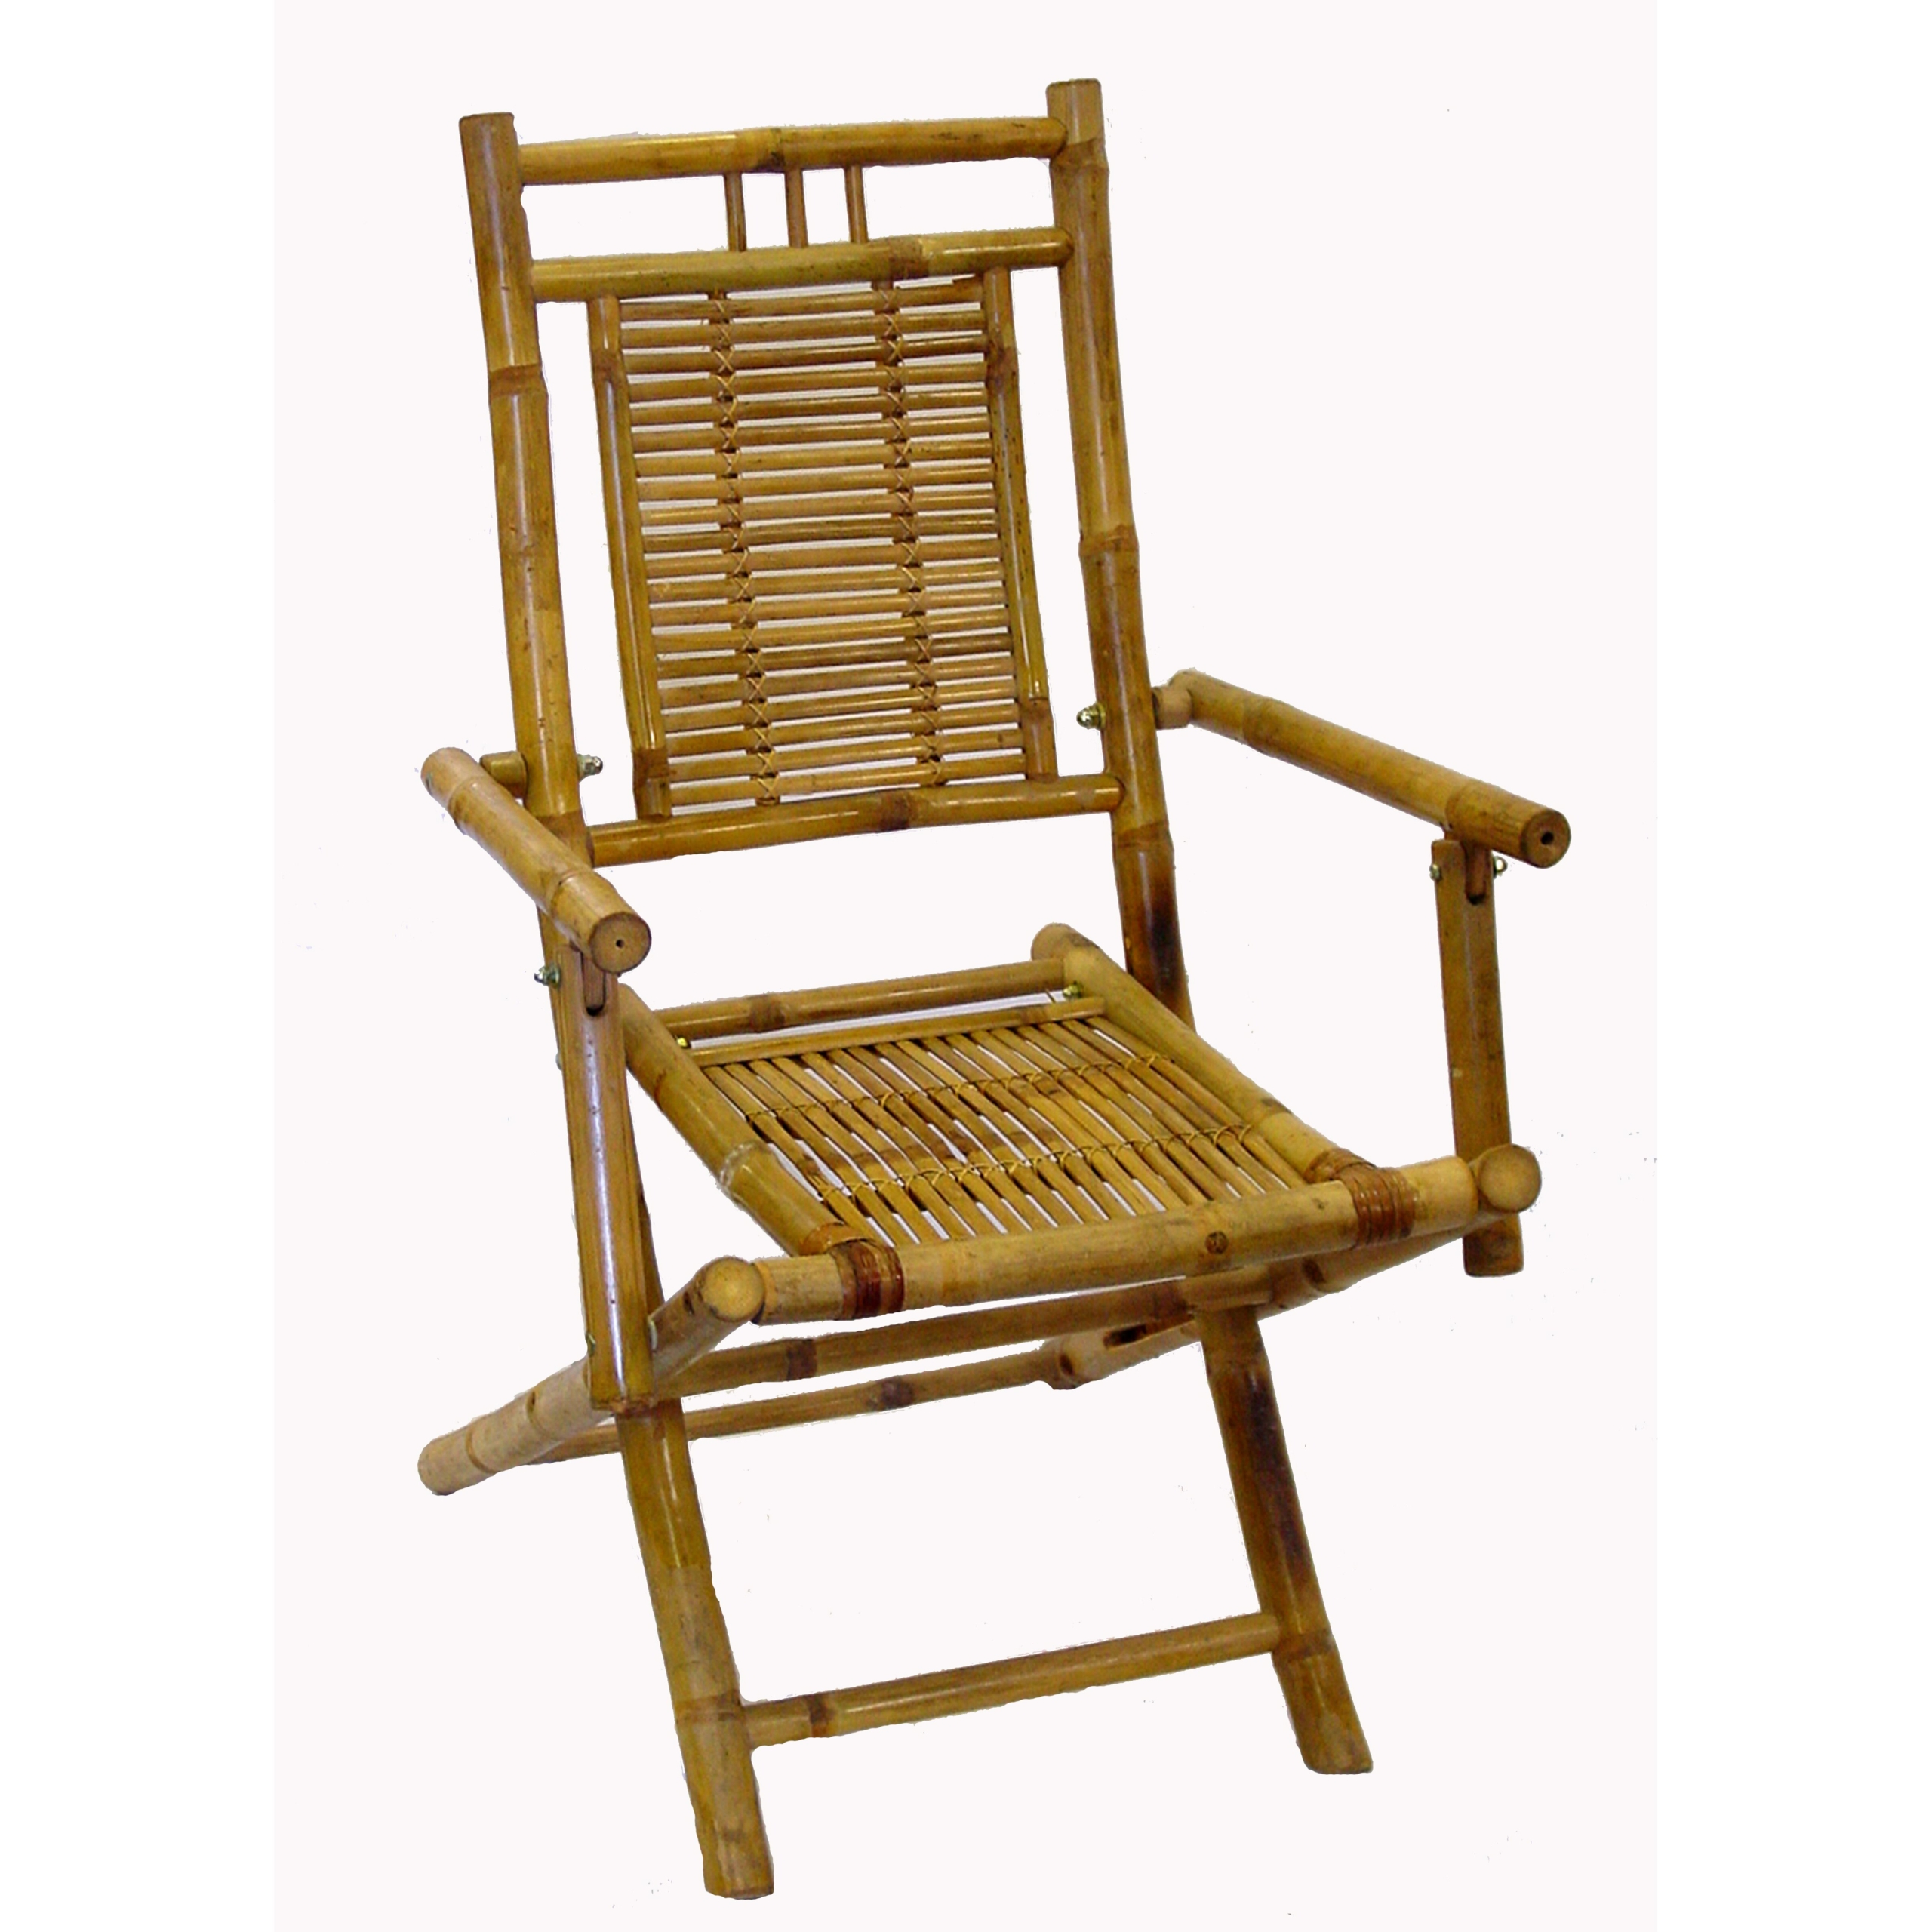 bamboo outdoor chairs folding rental patio ideas on foter chair w armrest set of 2